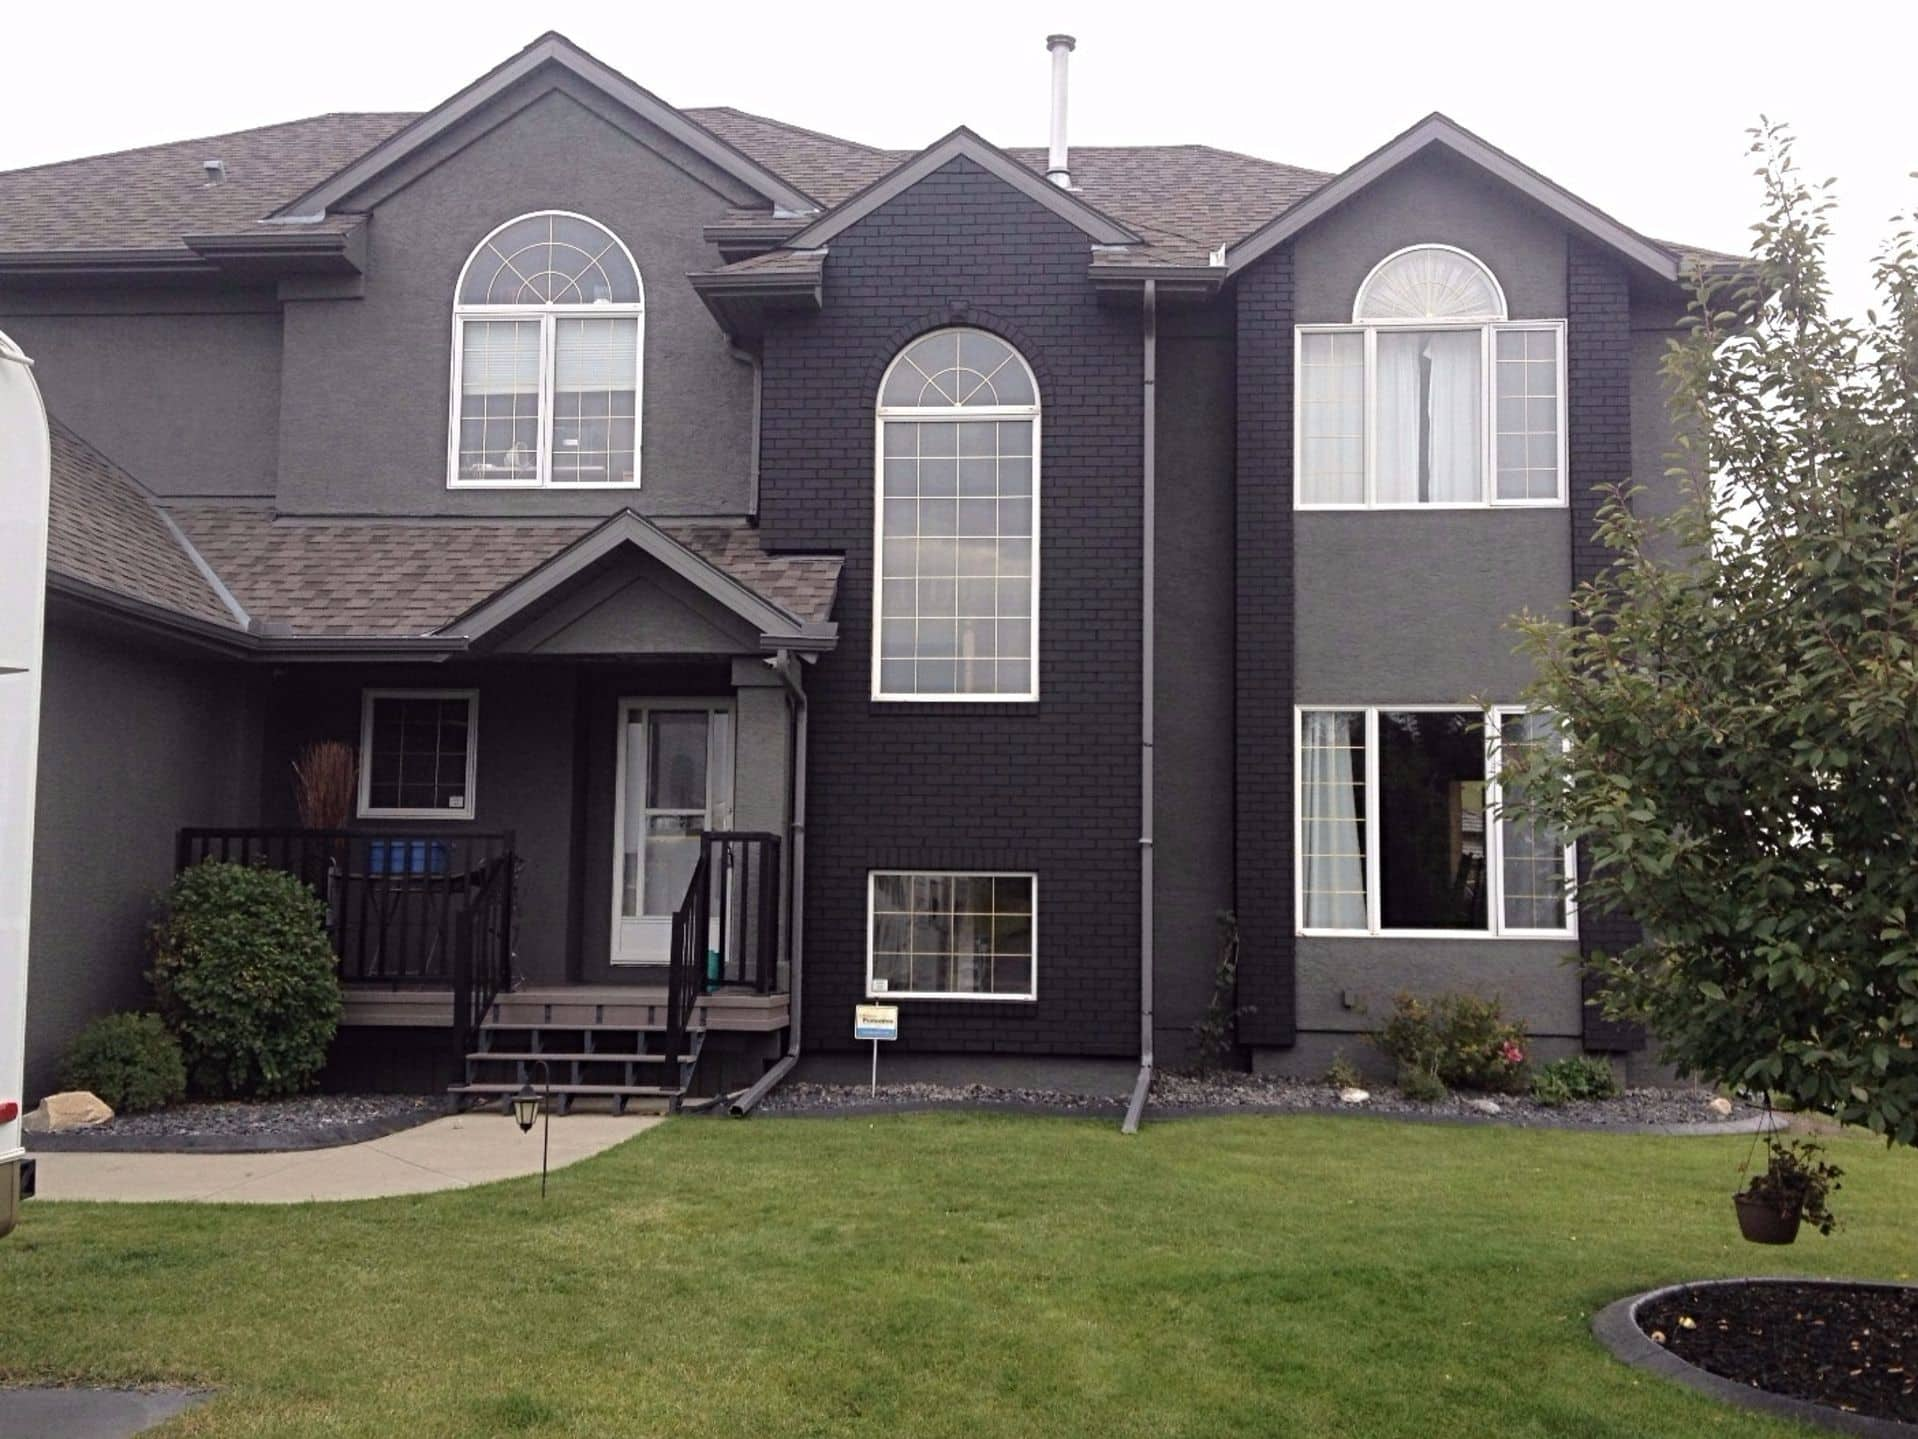 Stucco and brick painted after